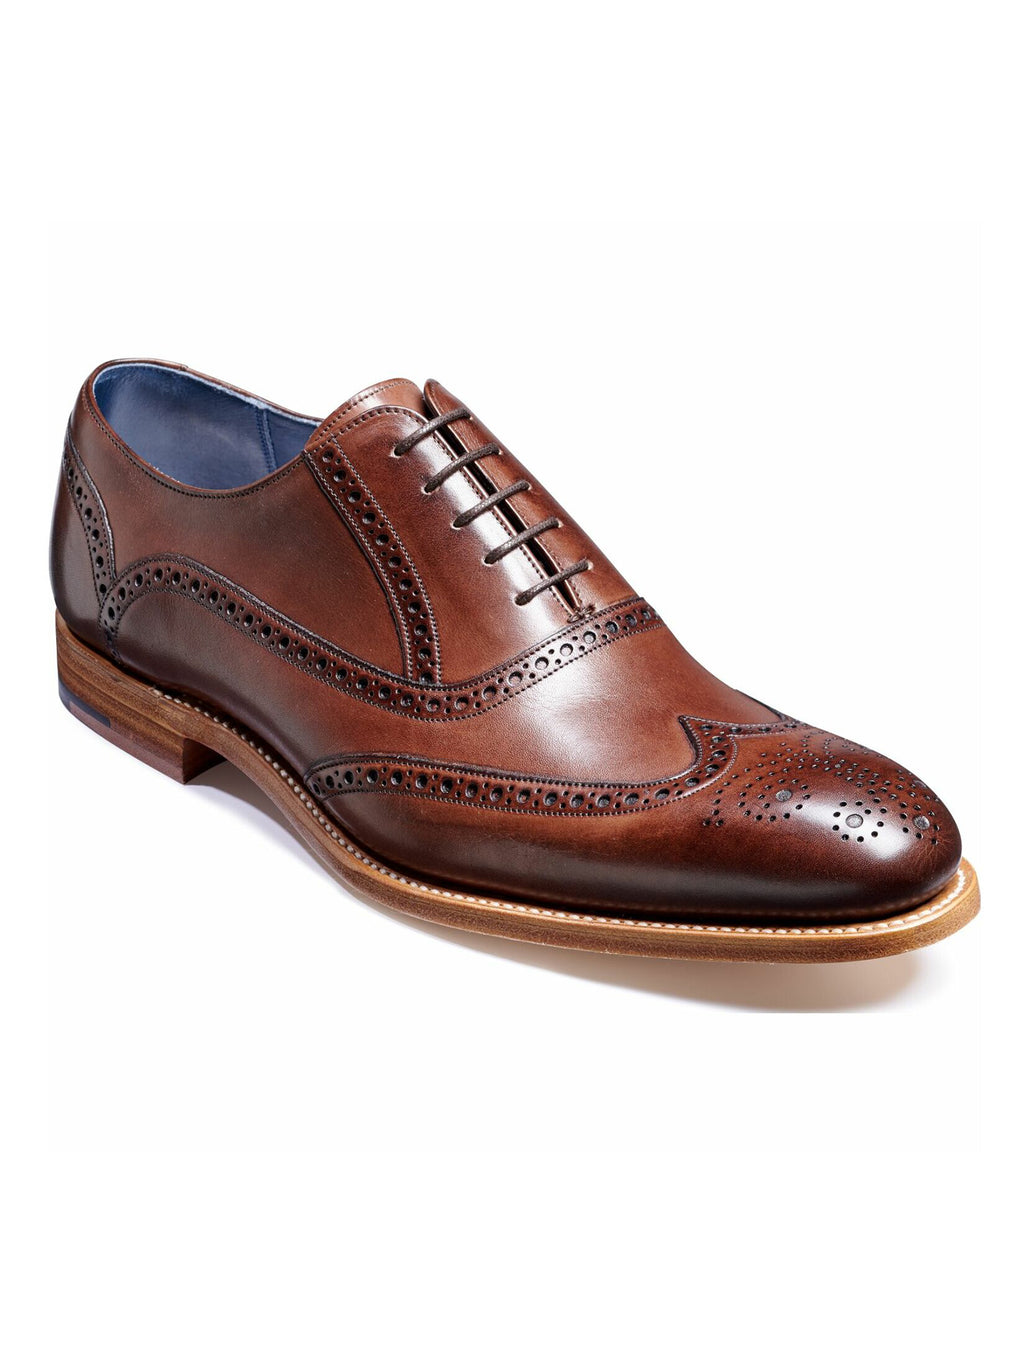 barker valiant ebony shoes